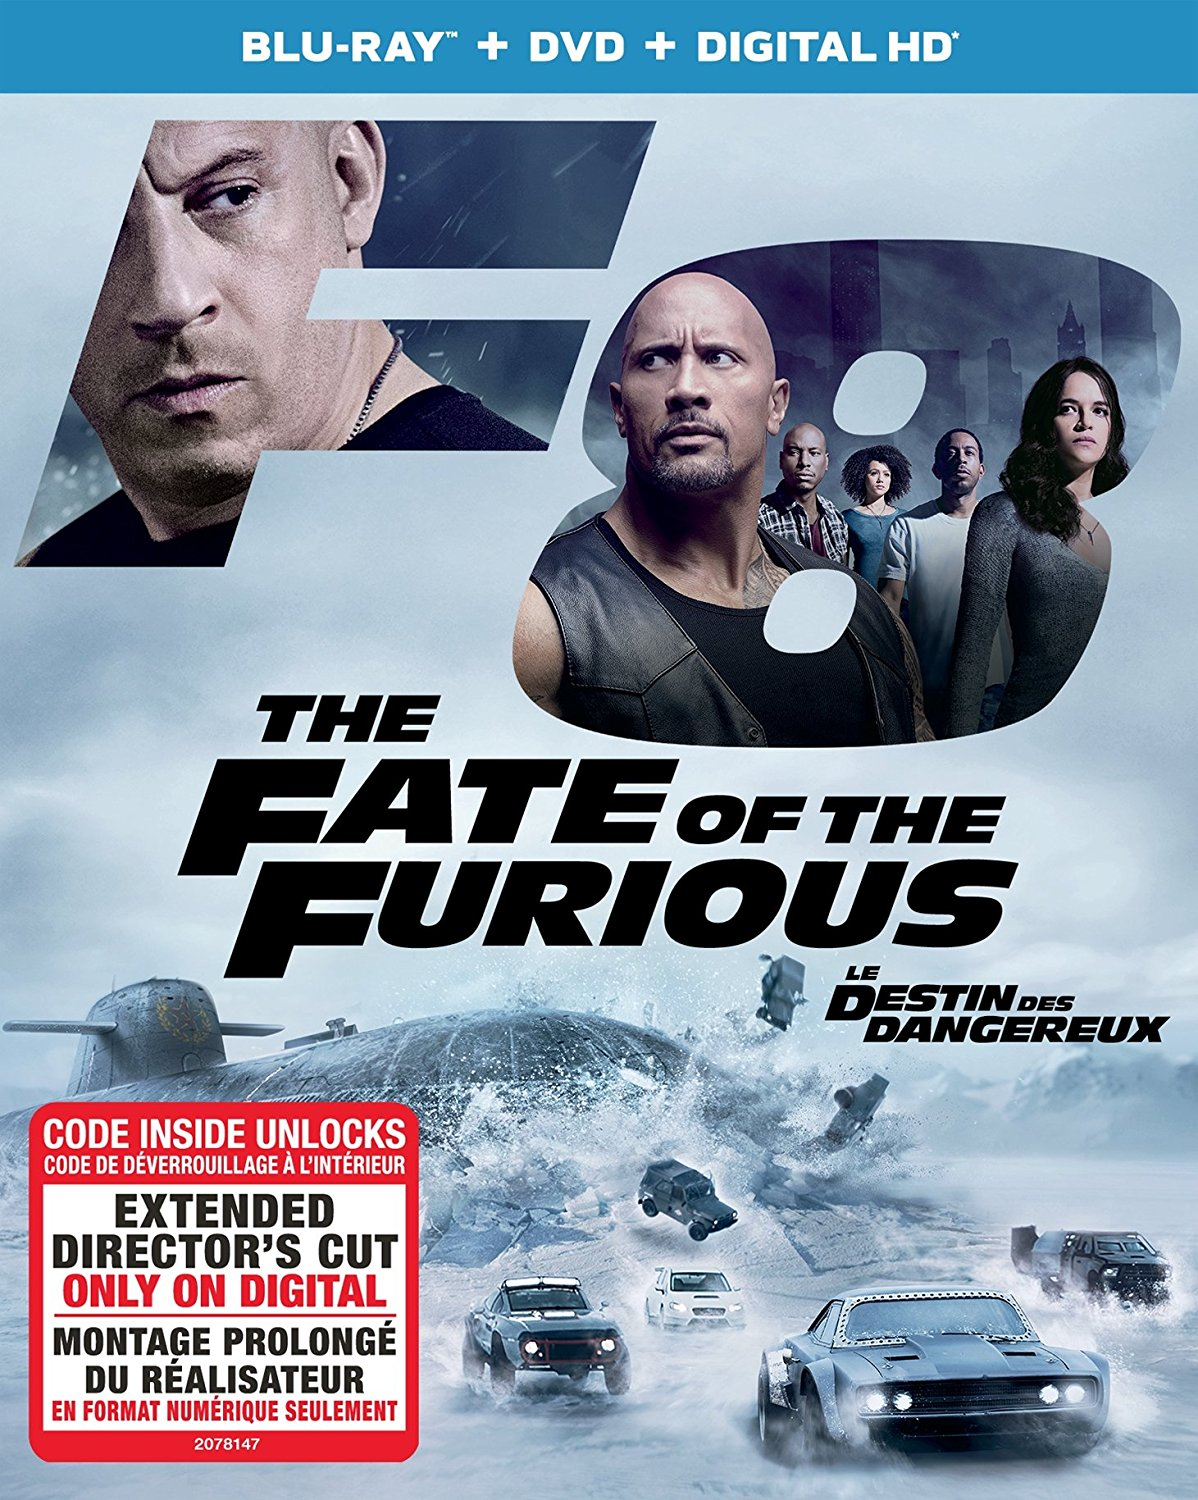 The Fate of the Furious is now available on DVD